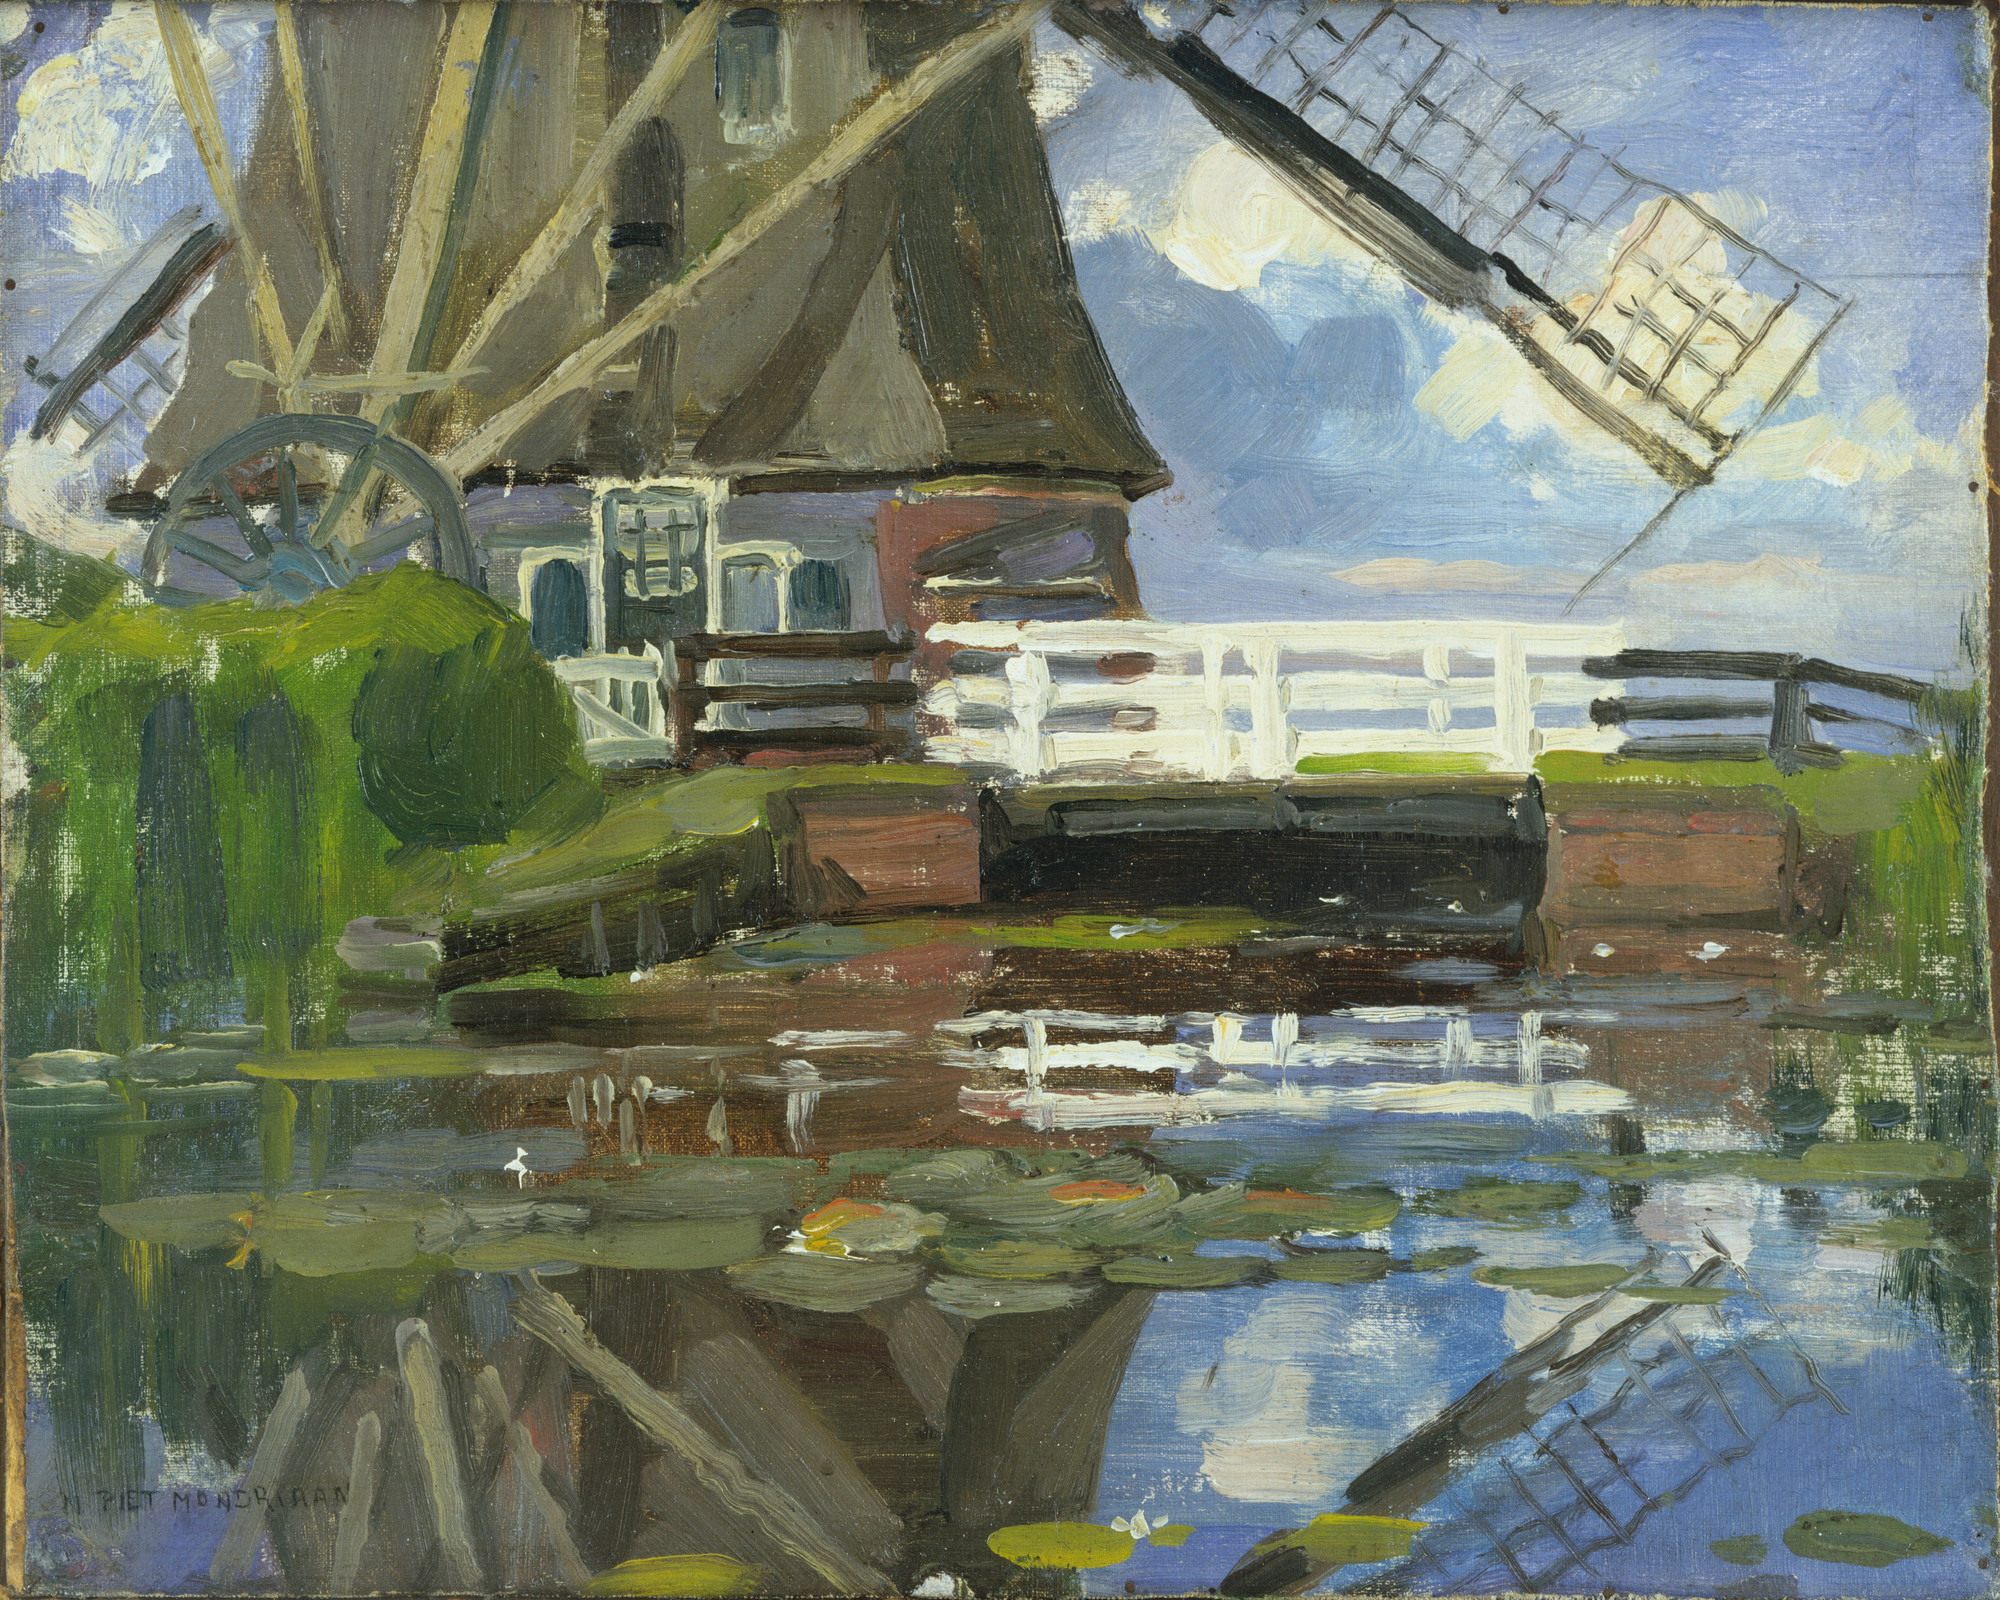 Piet Mondrian. Truncated View of the Broekzijder Mill on the Gein, Wings Facing West. c. 1902-03 or earlier